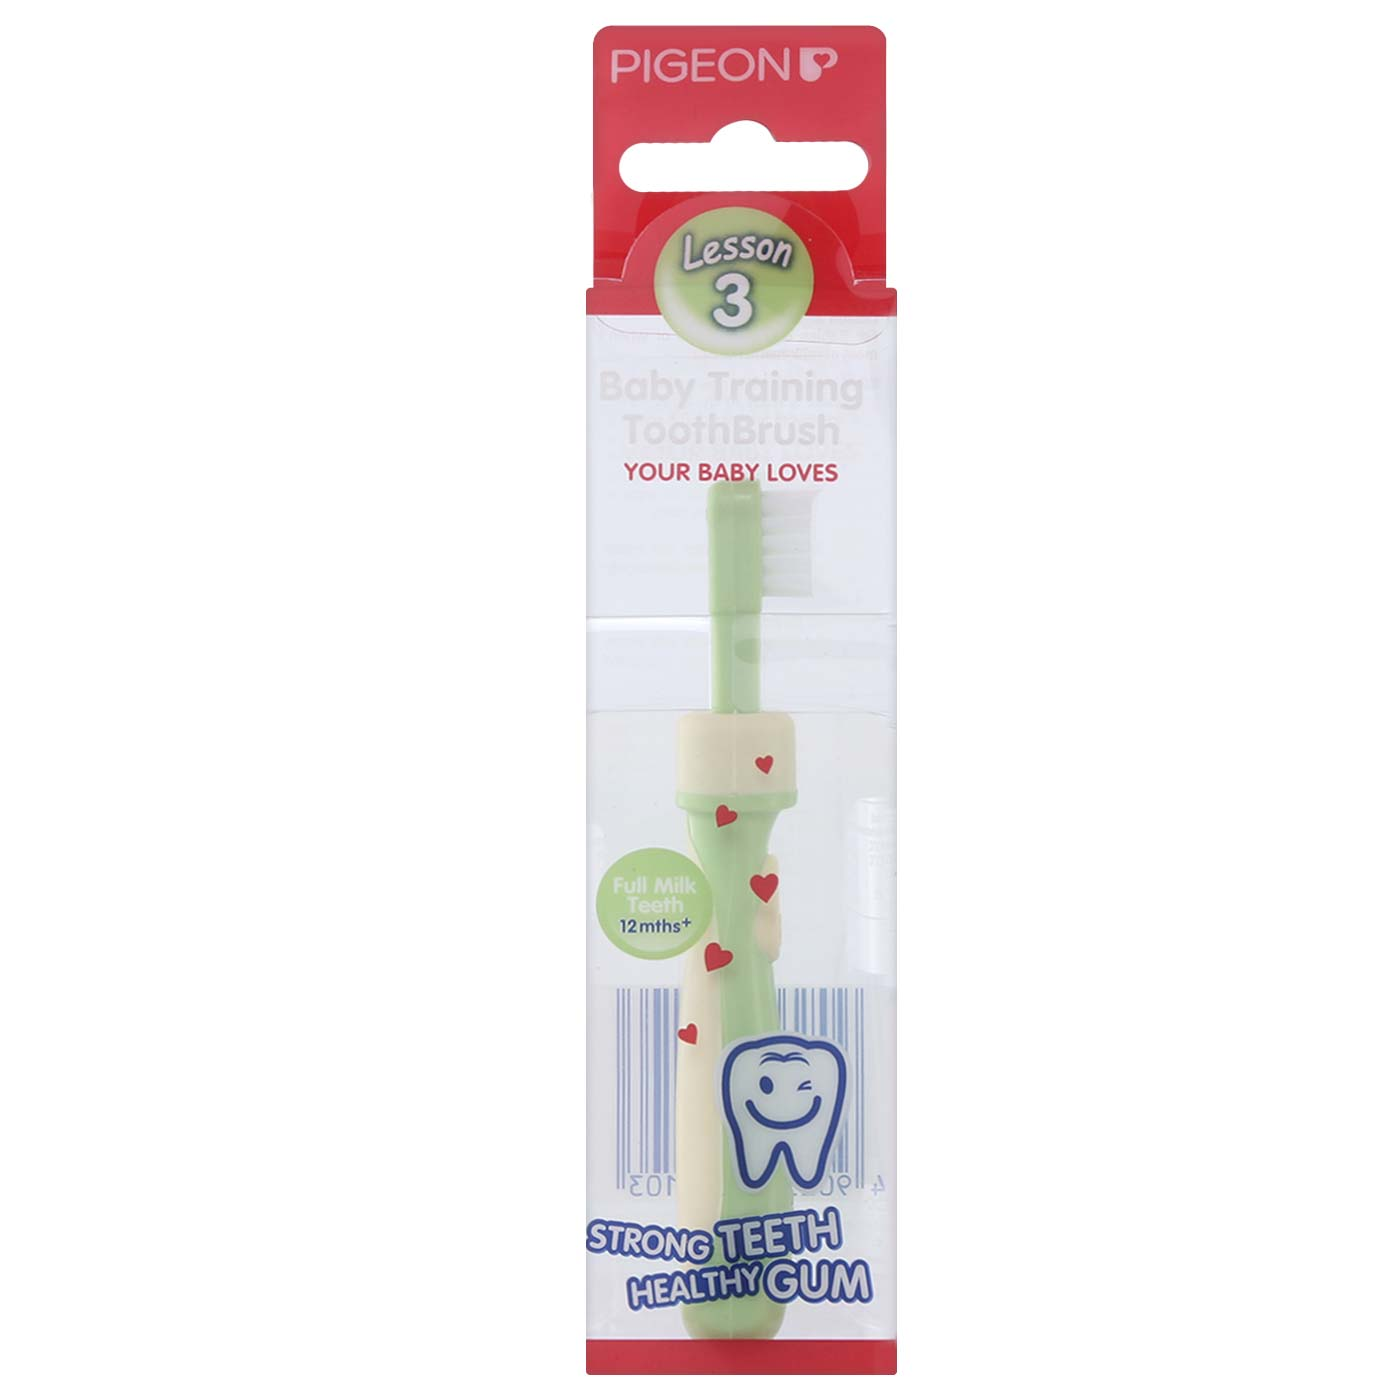 Pigeon Training Toothbrush Lesson - 3 Lime Green